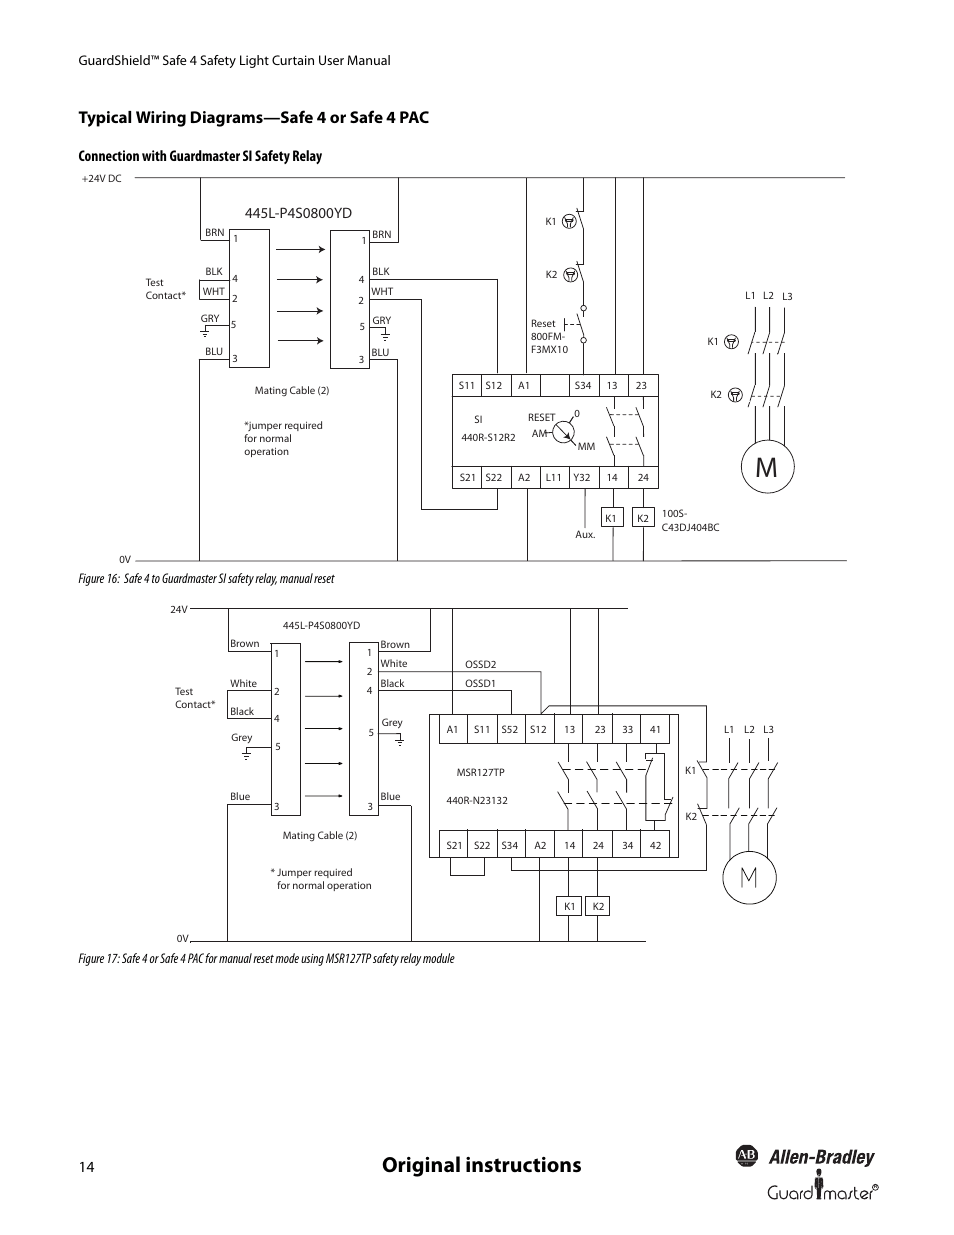 medium resolution of original instructions typical wiring diagrams safe 4 or safe 4 pac connection with guardmaster si safety relay rockwell automation 445l guardshield safe